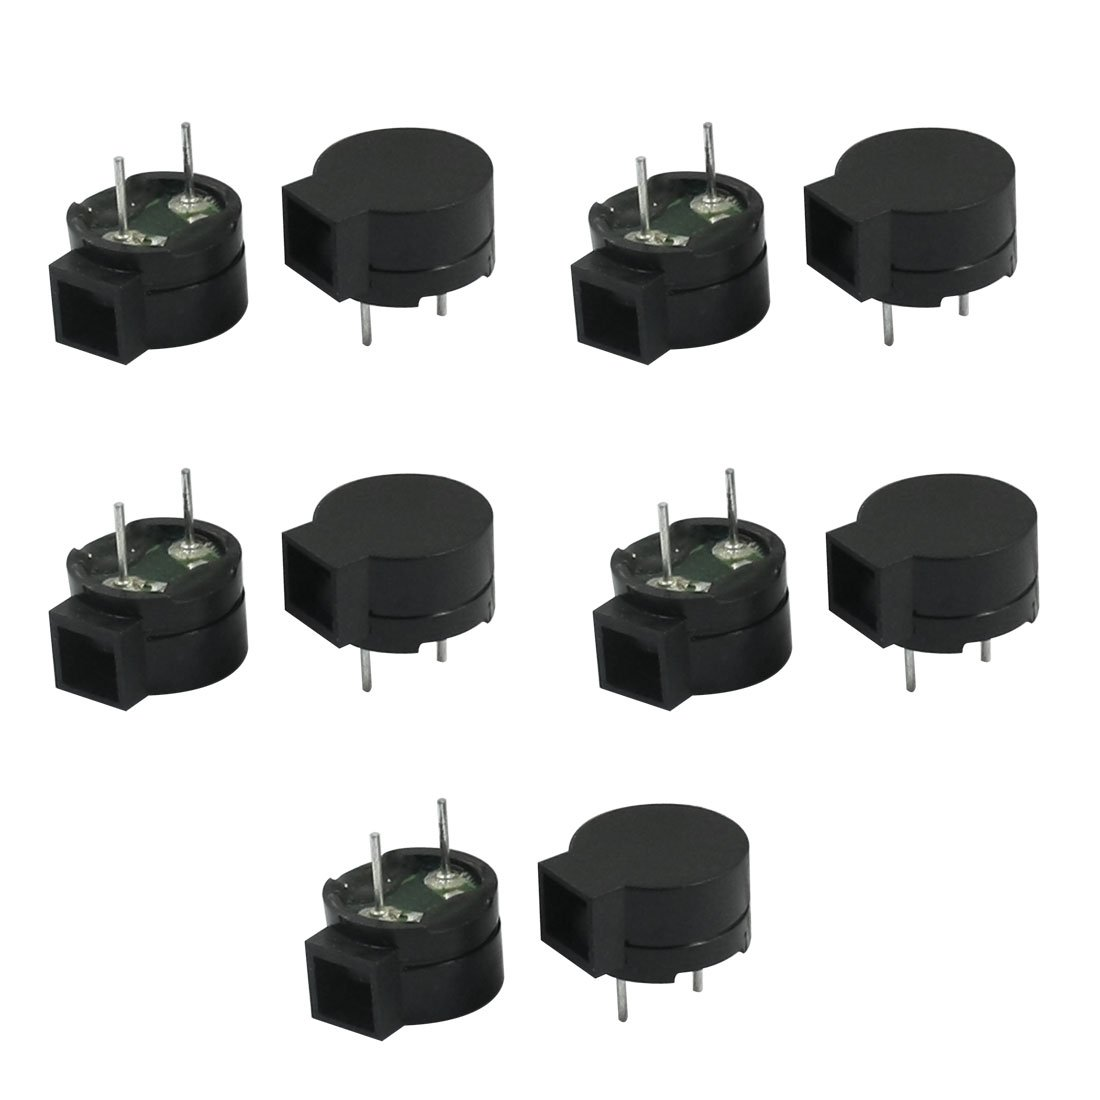 Aexit 10PCS 42 Security & Surveillance Ohm Two Terminals Passive 85dB Side Sound Horns & Sirens Electronic Buzzer